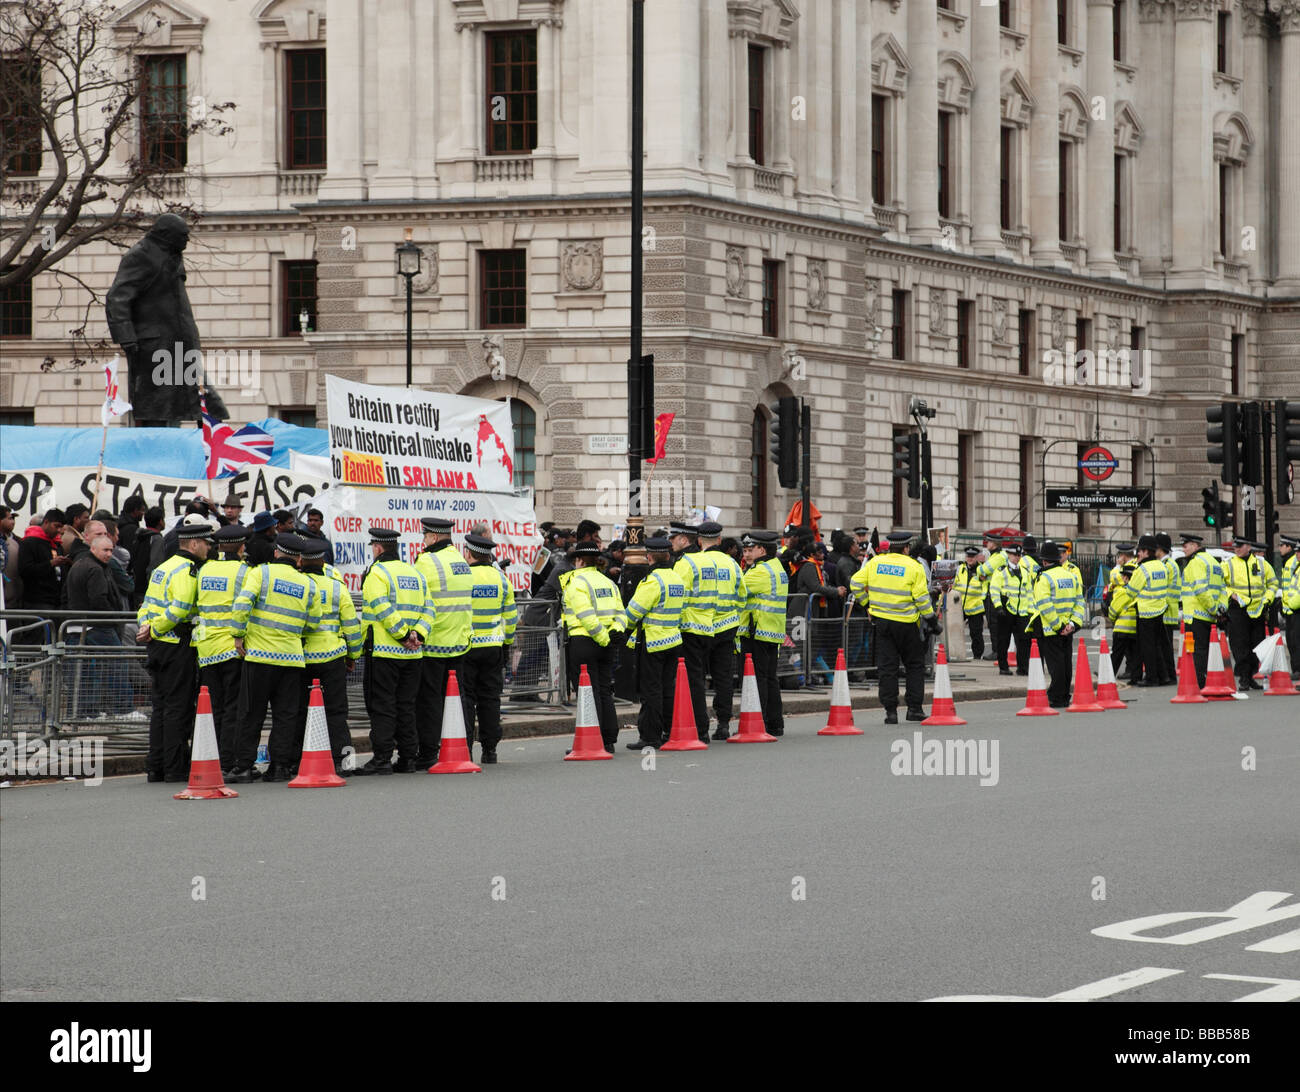 Policing of Tamil protesters demonstrating over the fighting in Sri Lanka outside Parliament London England UK. - Stock Image